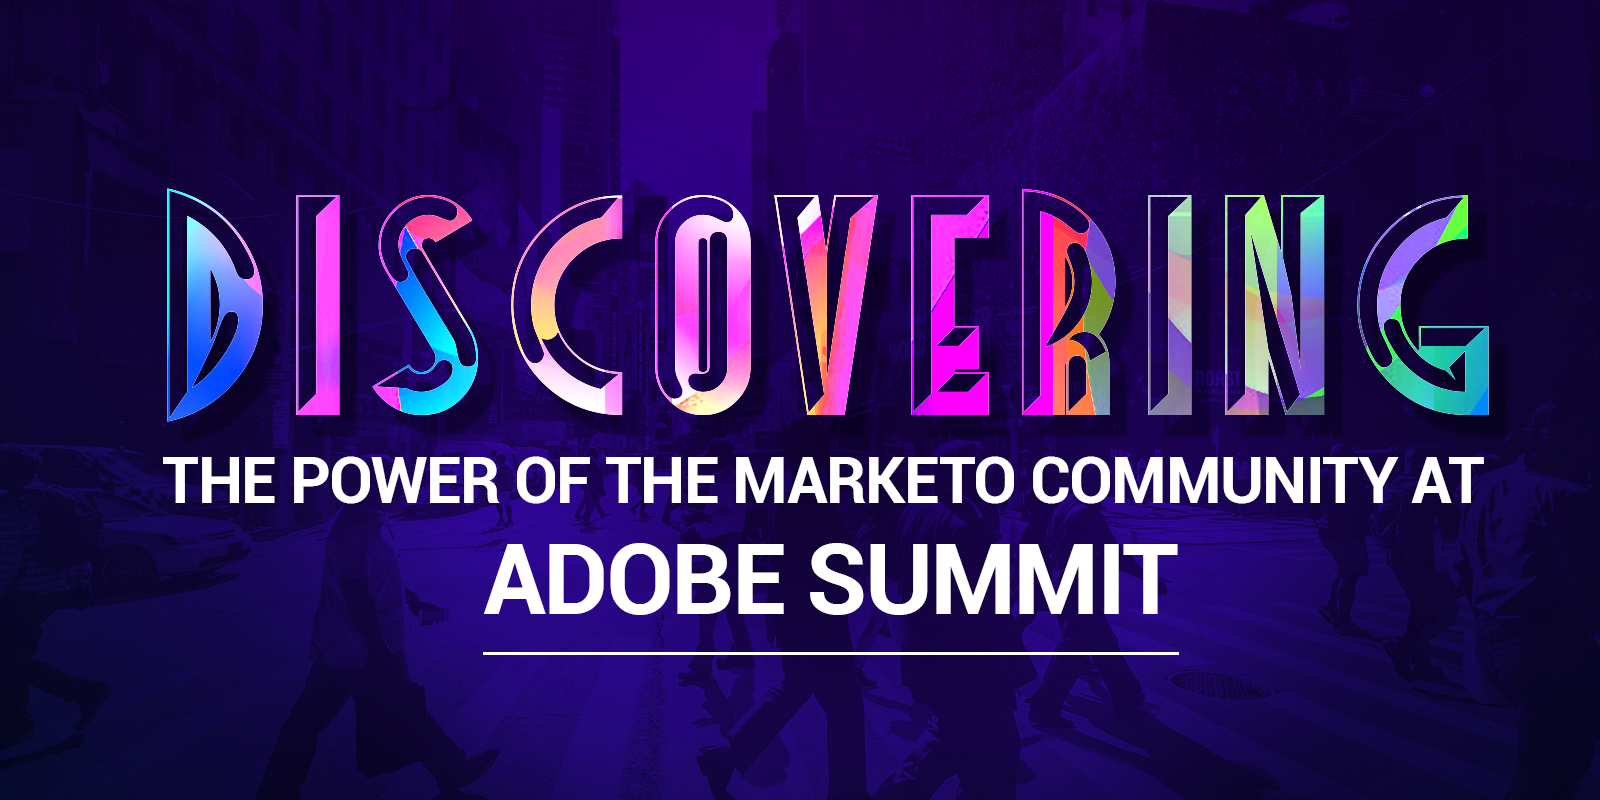 Discovering the Power of the Marketo Community at Adobe Summit